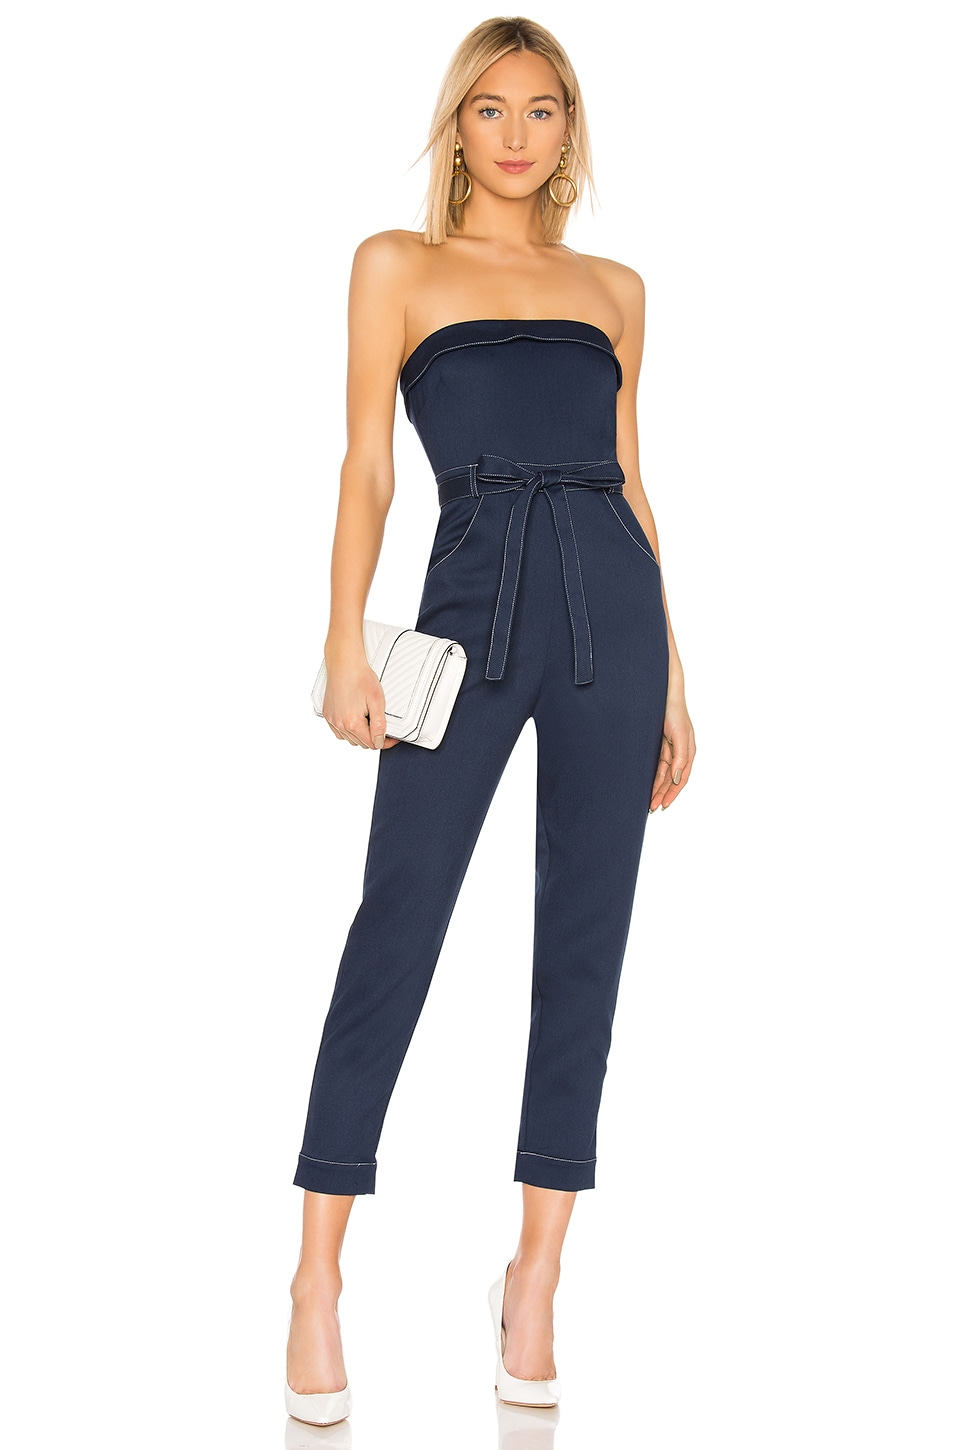 Lovers + Friends Coraline Jumpsuit in Navy